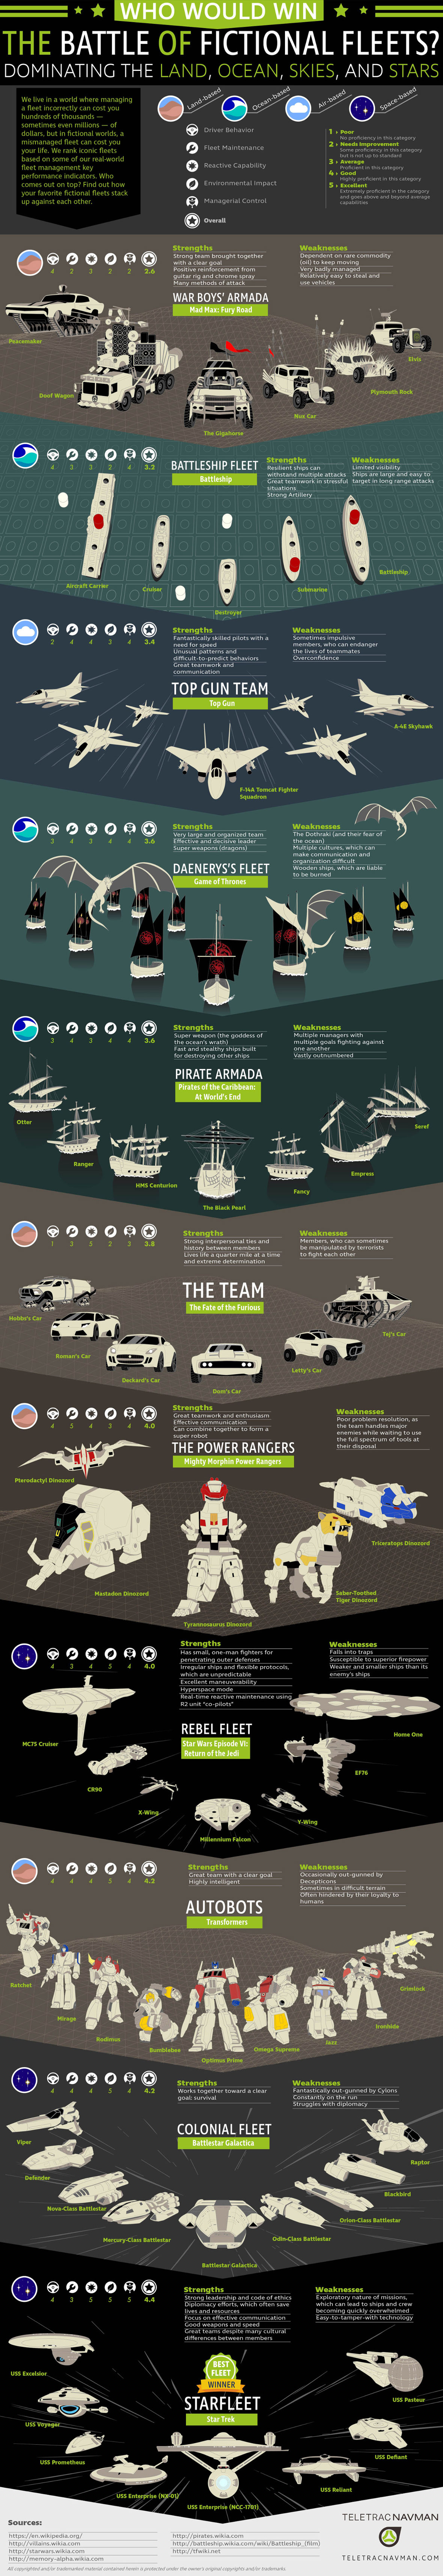 Ranking the Top 11 Fictional Fleets - TeletracNavman.com Infographic